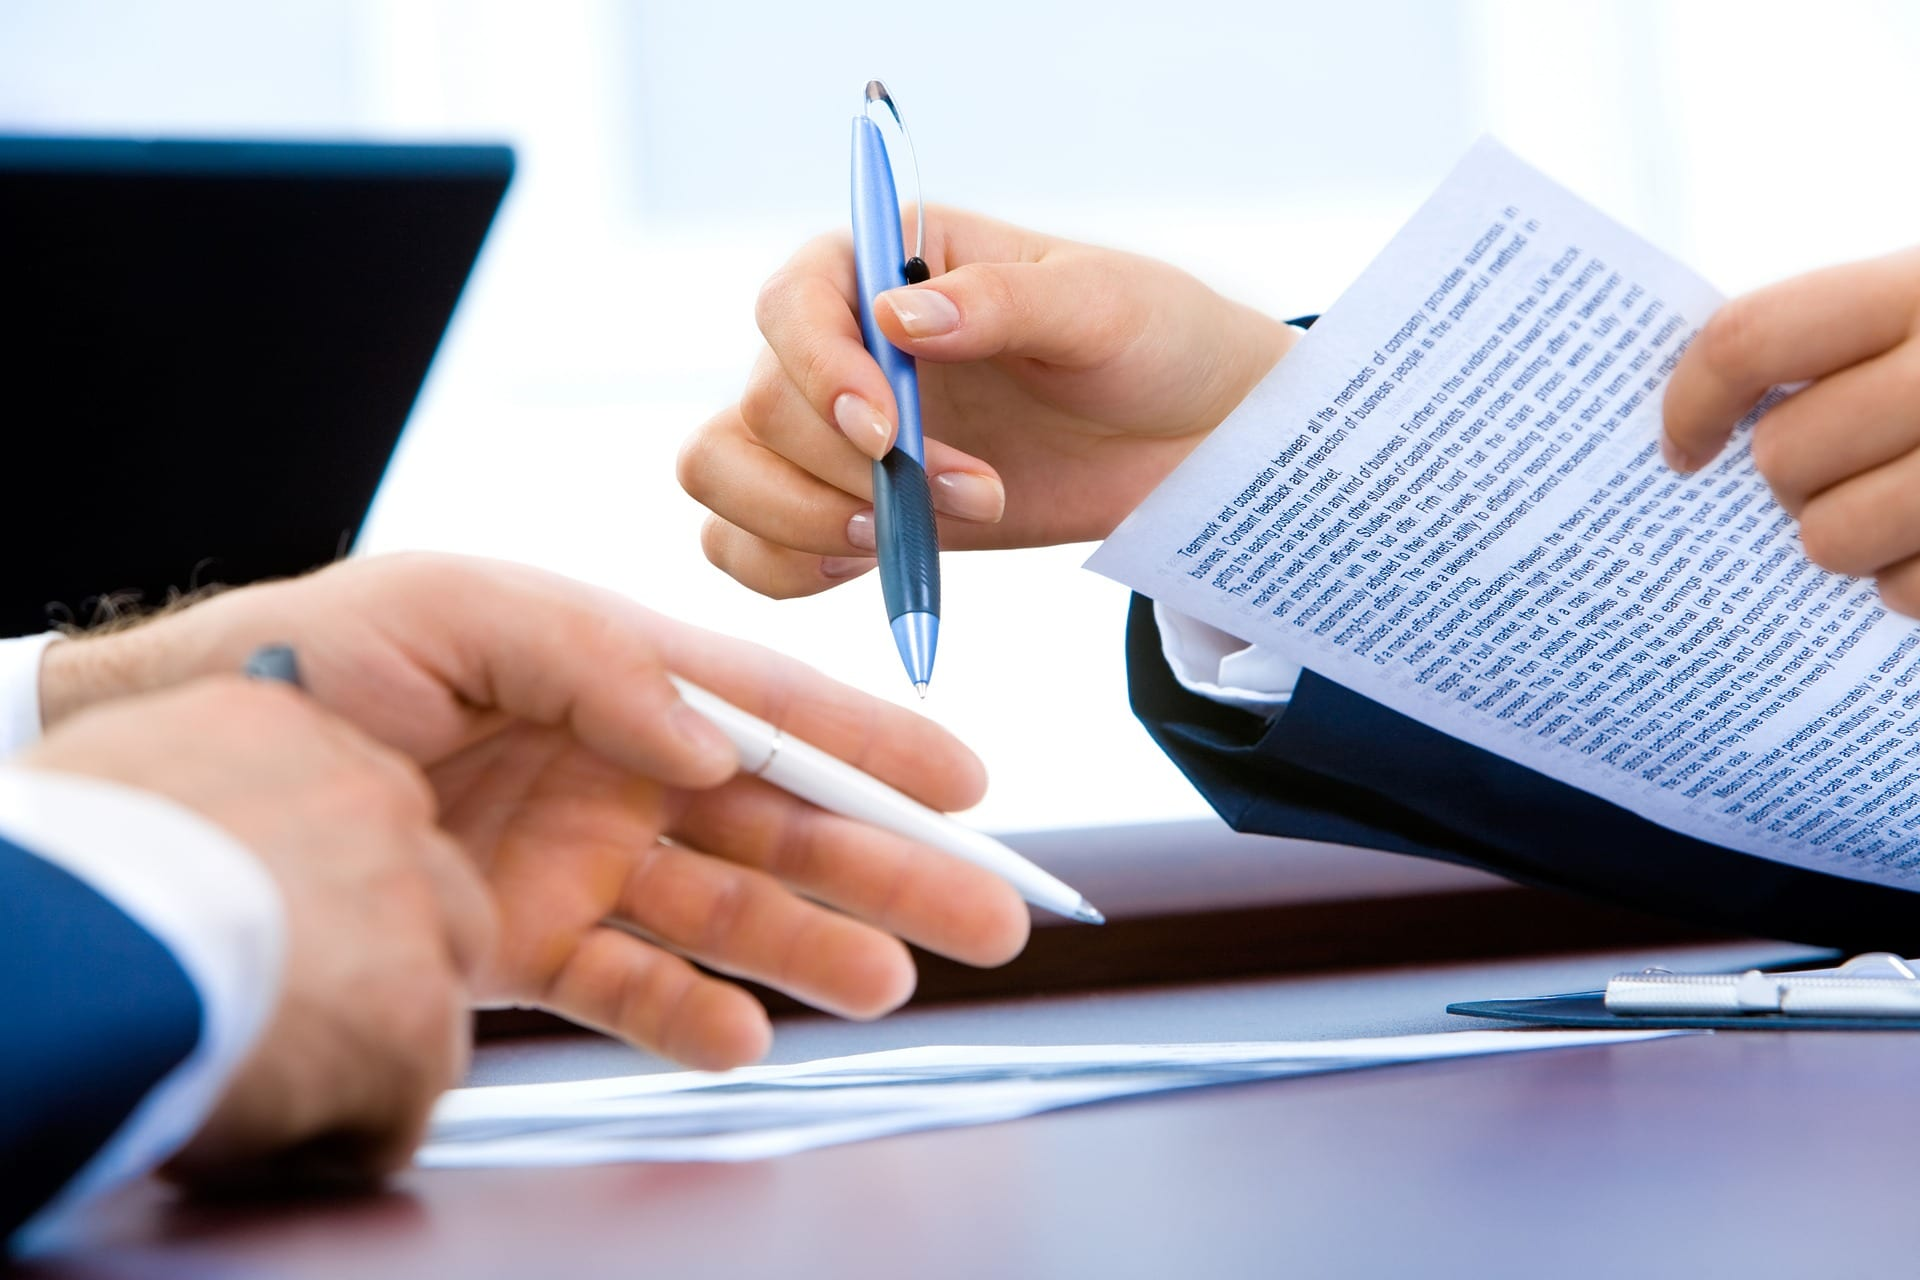 Parties entering into an agreement. Our Nashville commercial litigation attorneys can help guide you through business disputes.